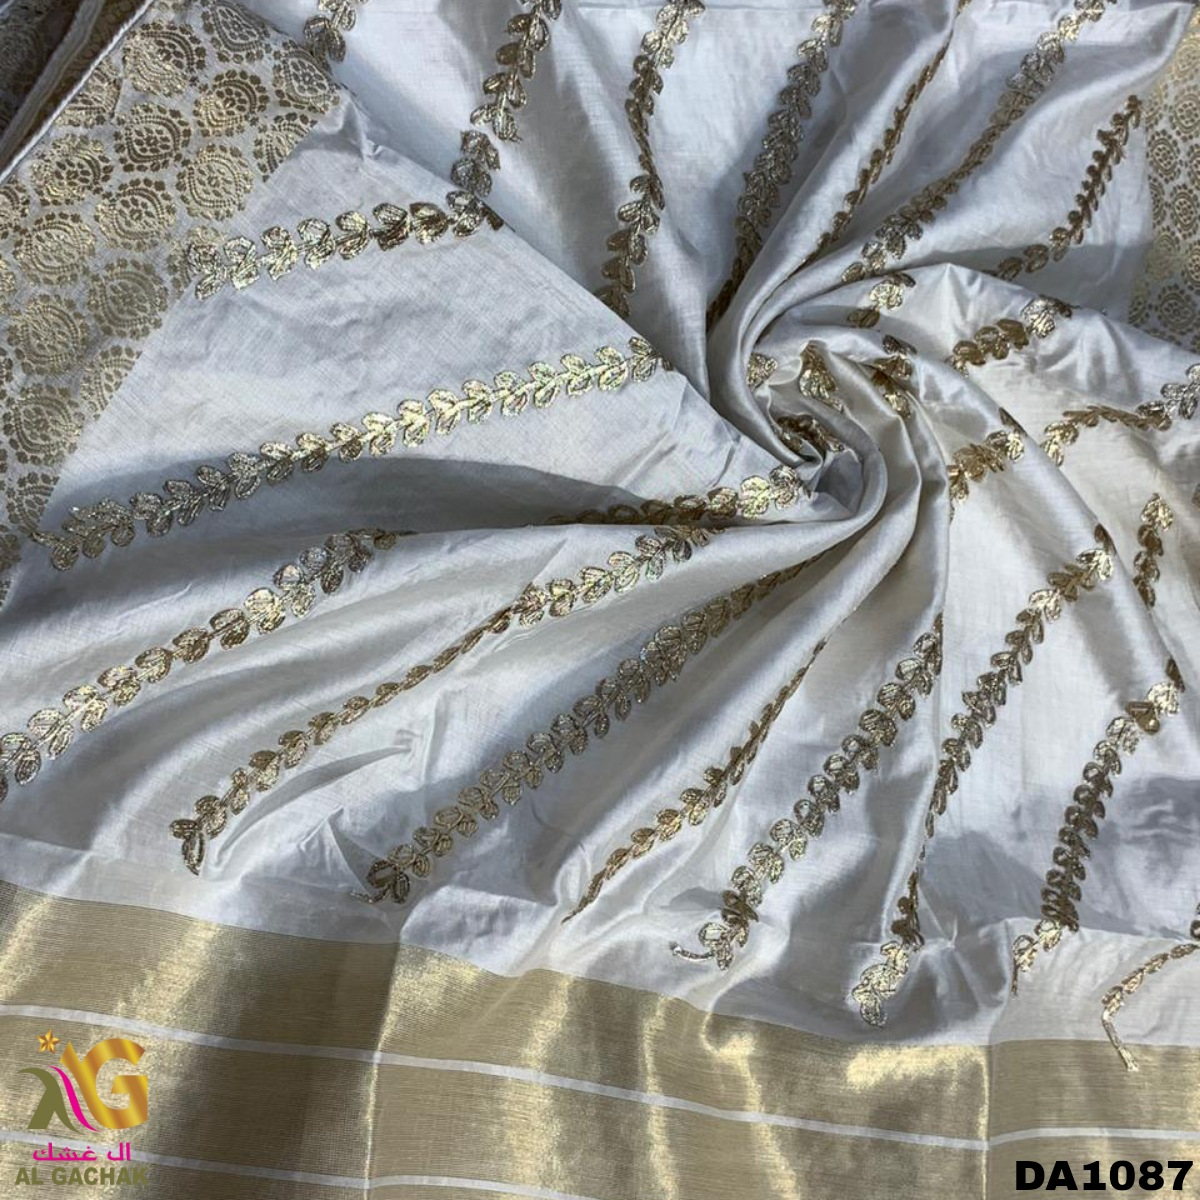 """Shop This Dyeable Chanderi Brocade Gottapatti Work Dupatta Now 😍 Width:52""""inch Price :Approx 9.40 BHD/pc MOQ:14 Meter Dealing in wholesale & for #boutique use! #l4l #F4F #Bahrain #boutiqueshopping #Like #fashiondesigner #follo #ClothingBrand #Clothing #clothingline #fabrics"""